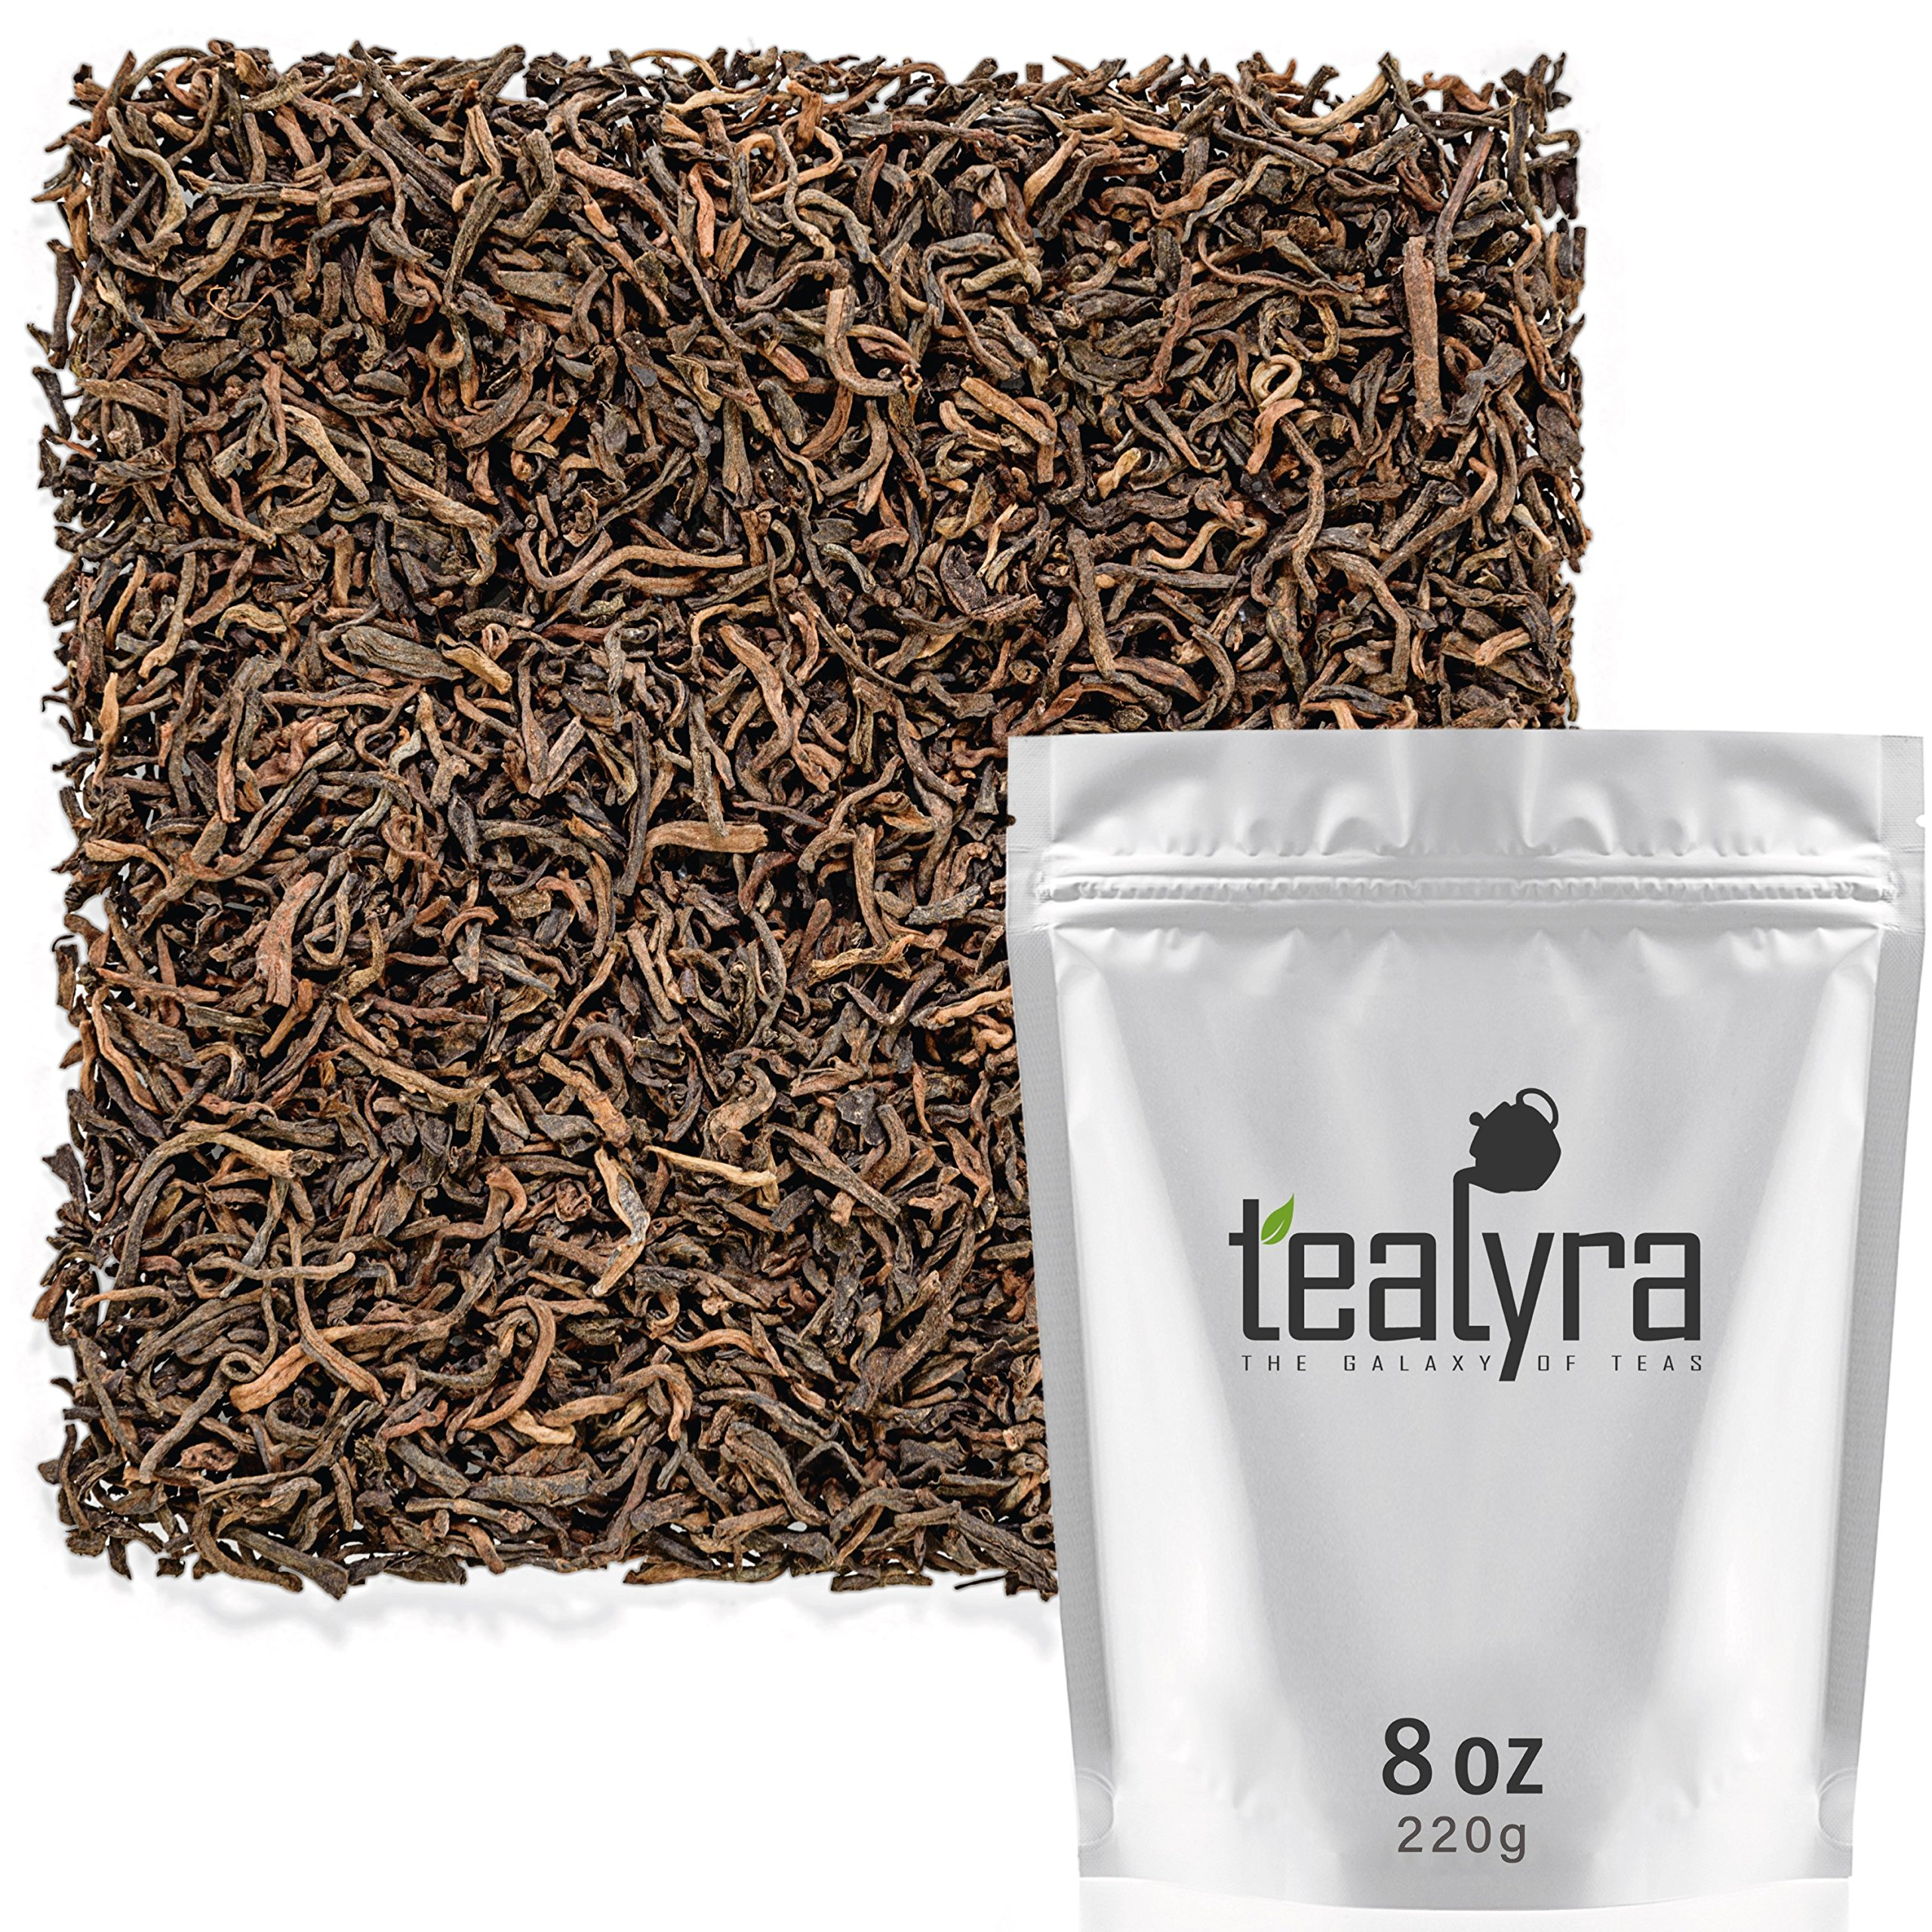 Tealyra - Ripe Pu'erh Tea - 20 Years Aged Loose Leaf from Yunnan - China - 100% Natural - Caffeine Level High - Weight Loss Tea - Aged Black Tea Pu Er - 220g (8-ounce)